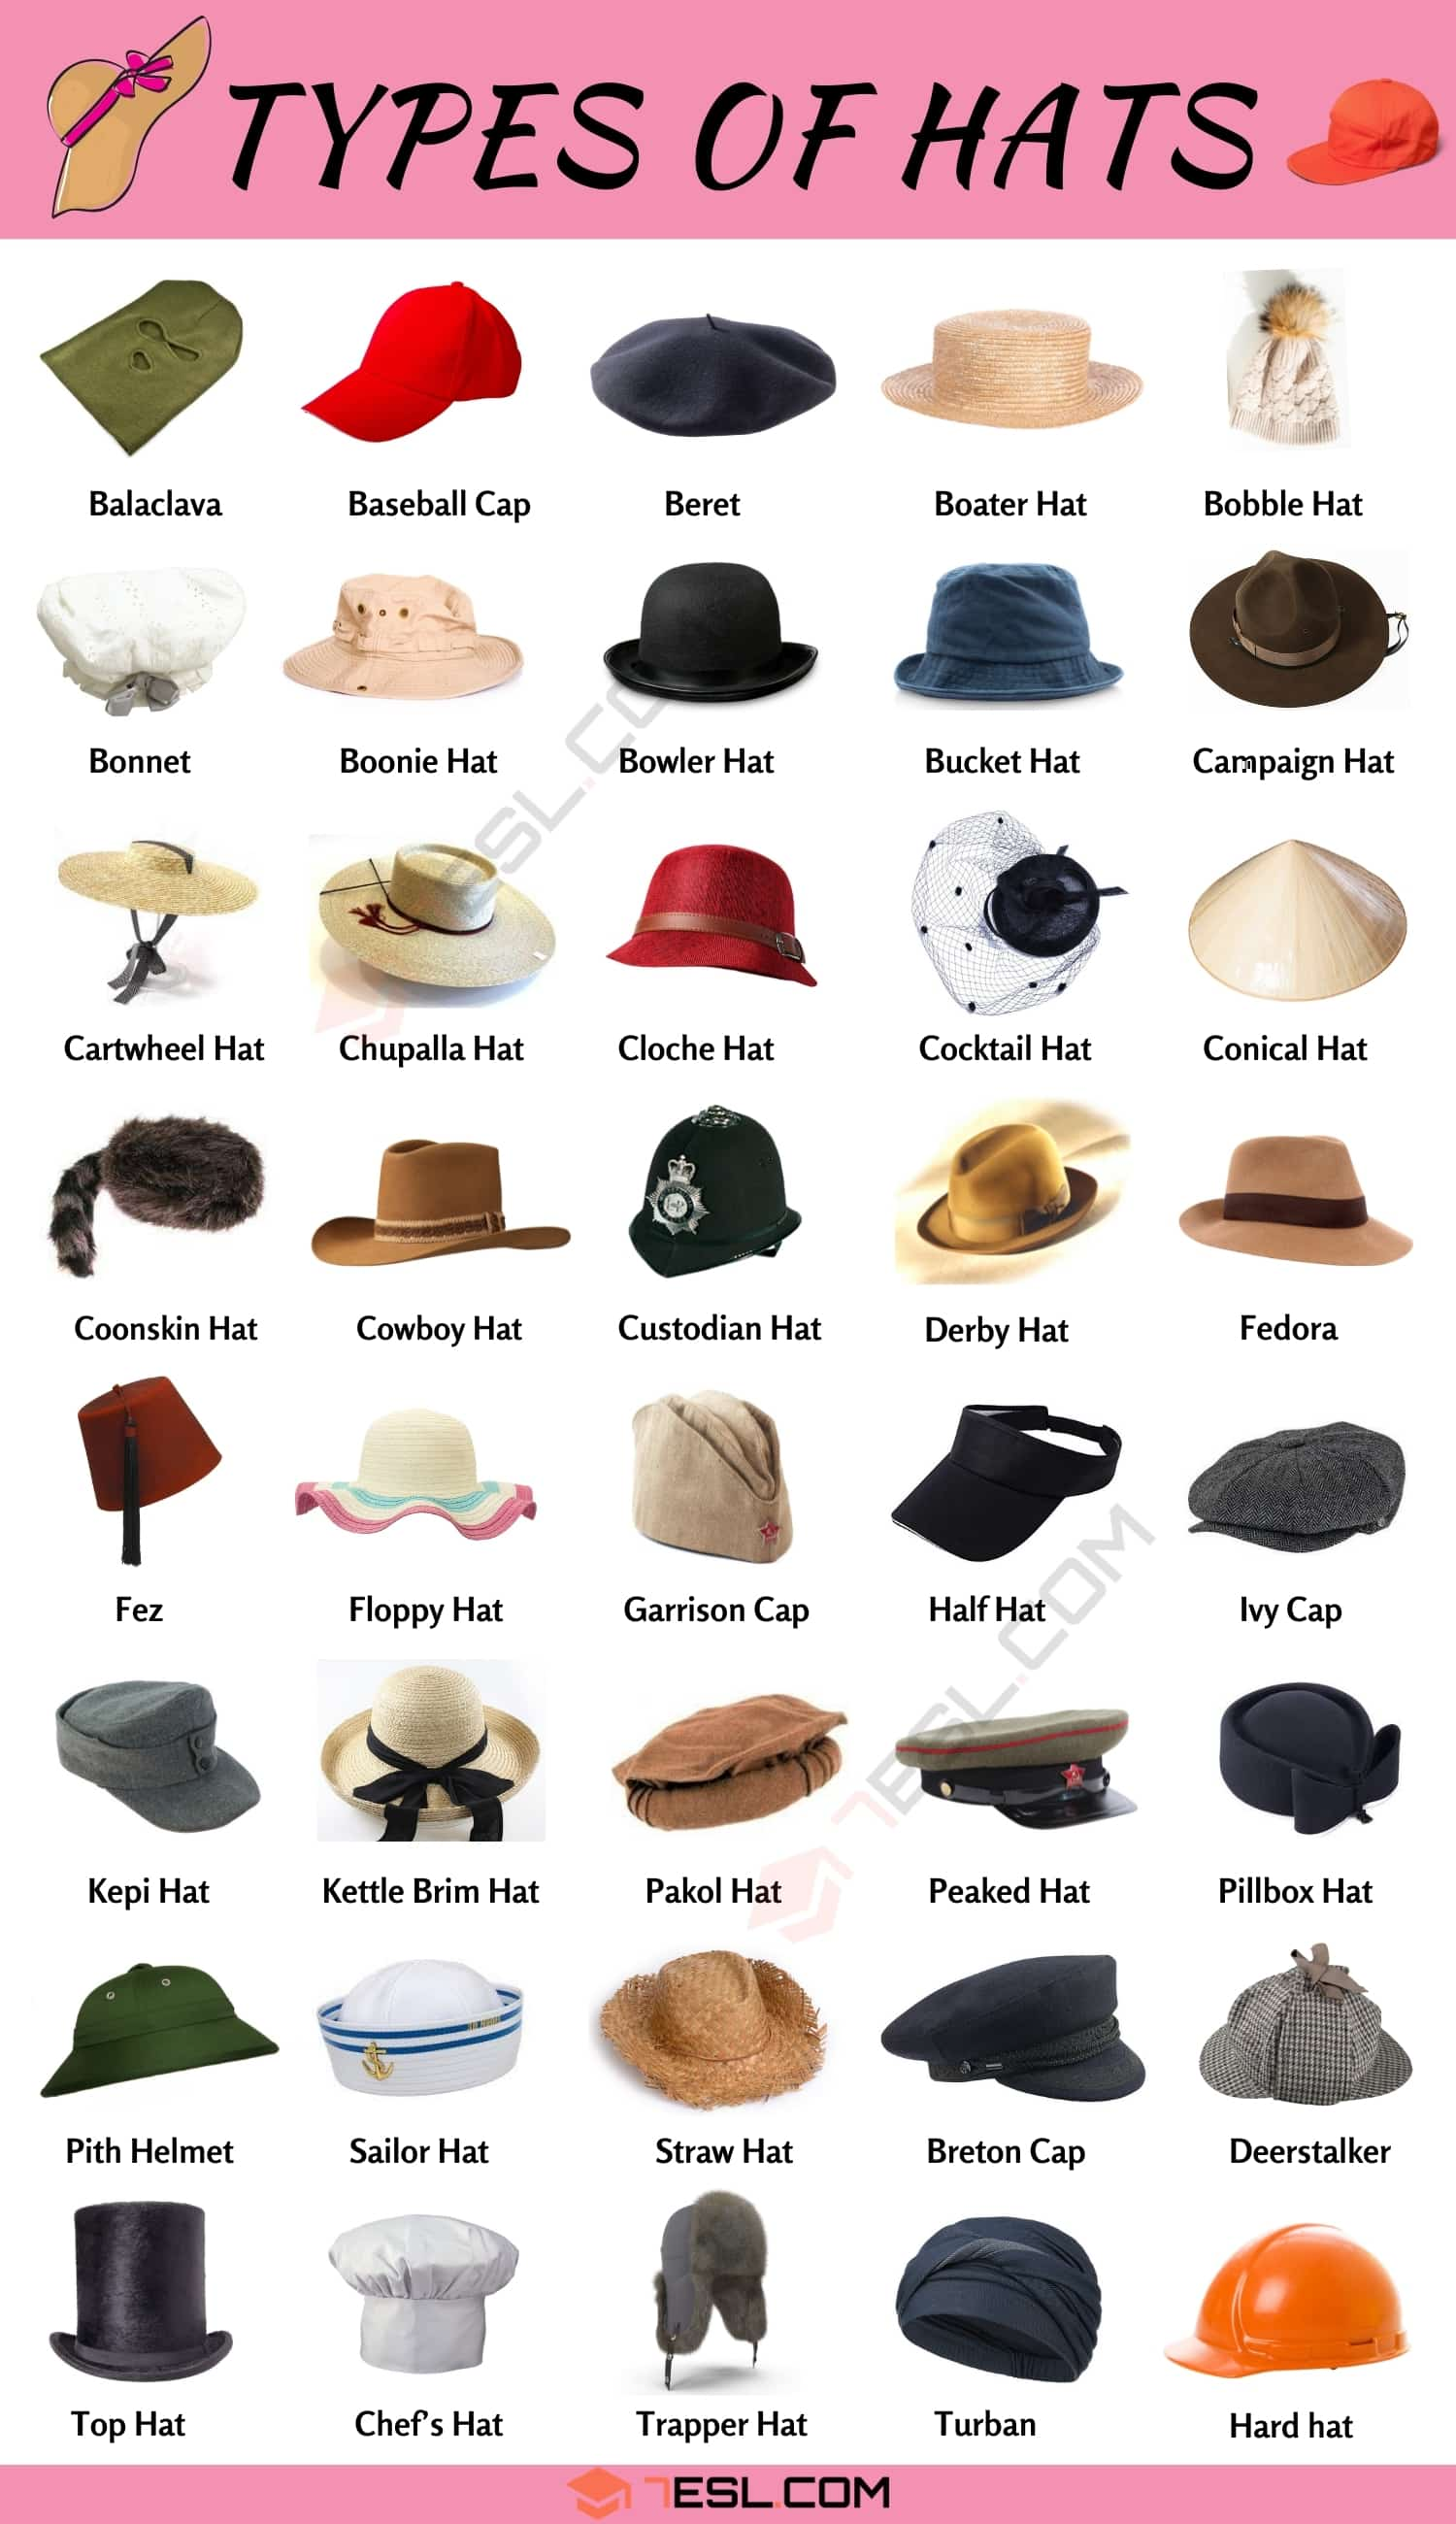 Types Of Hats: A Visual Guide to 55 Different Hat Styles for Men and Women